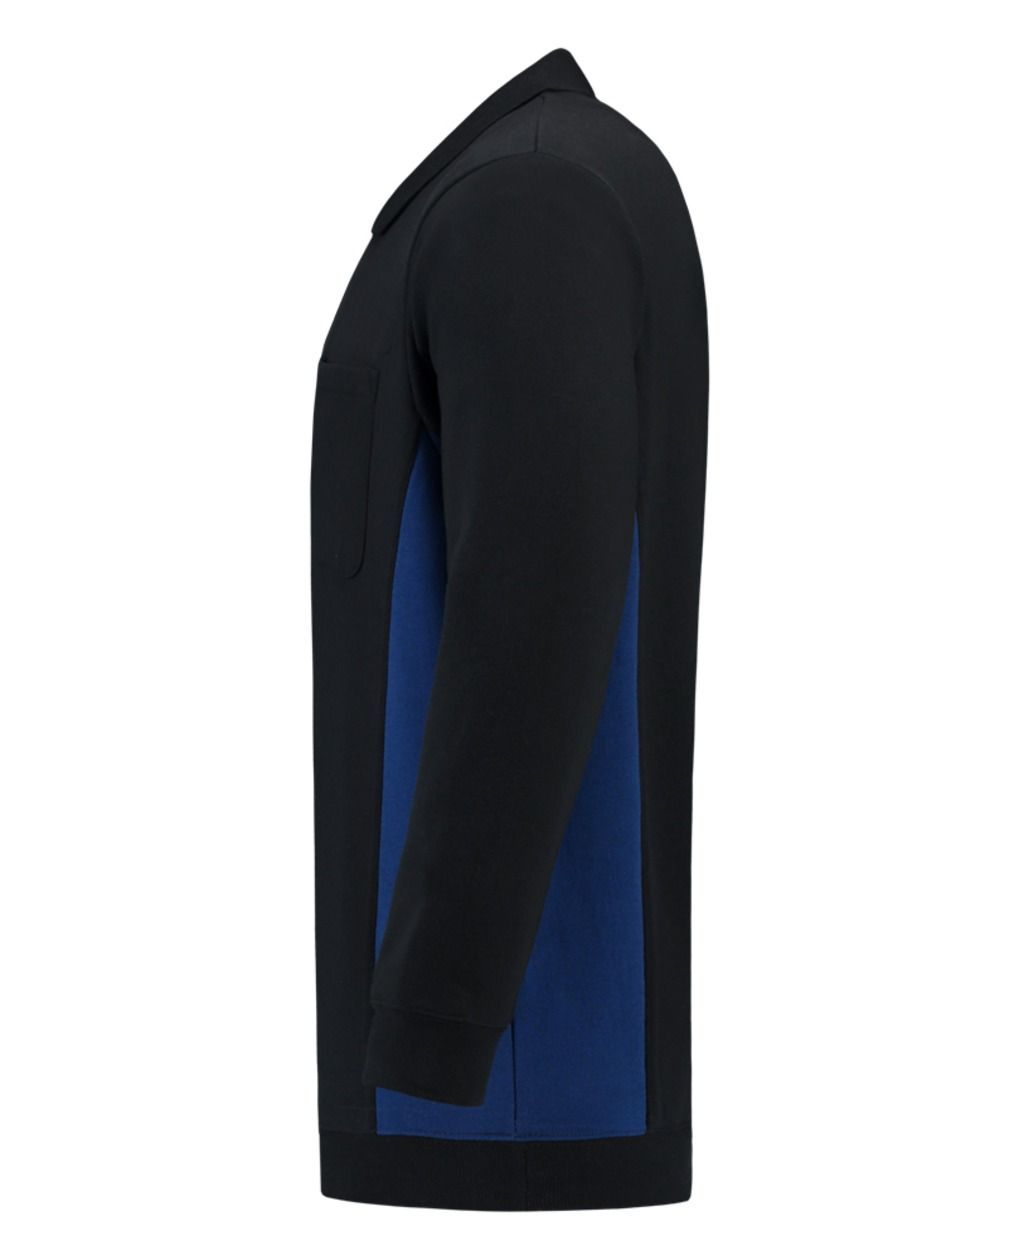 TS2000 Polosweater